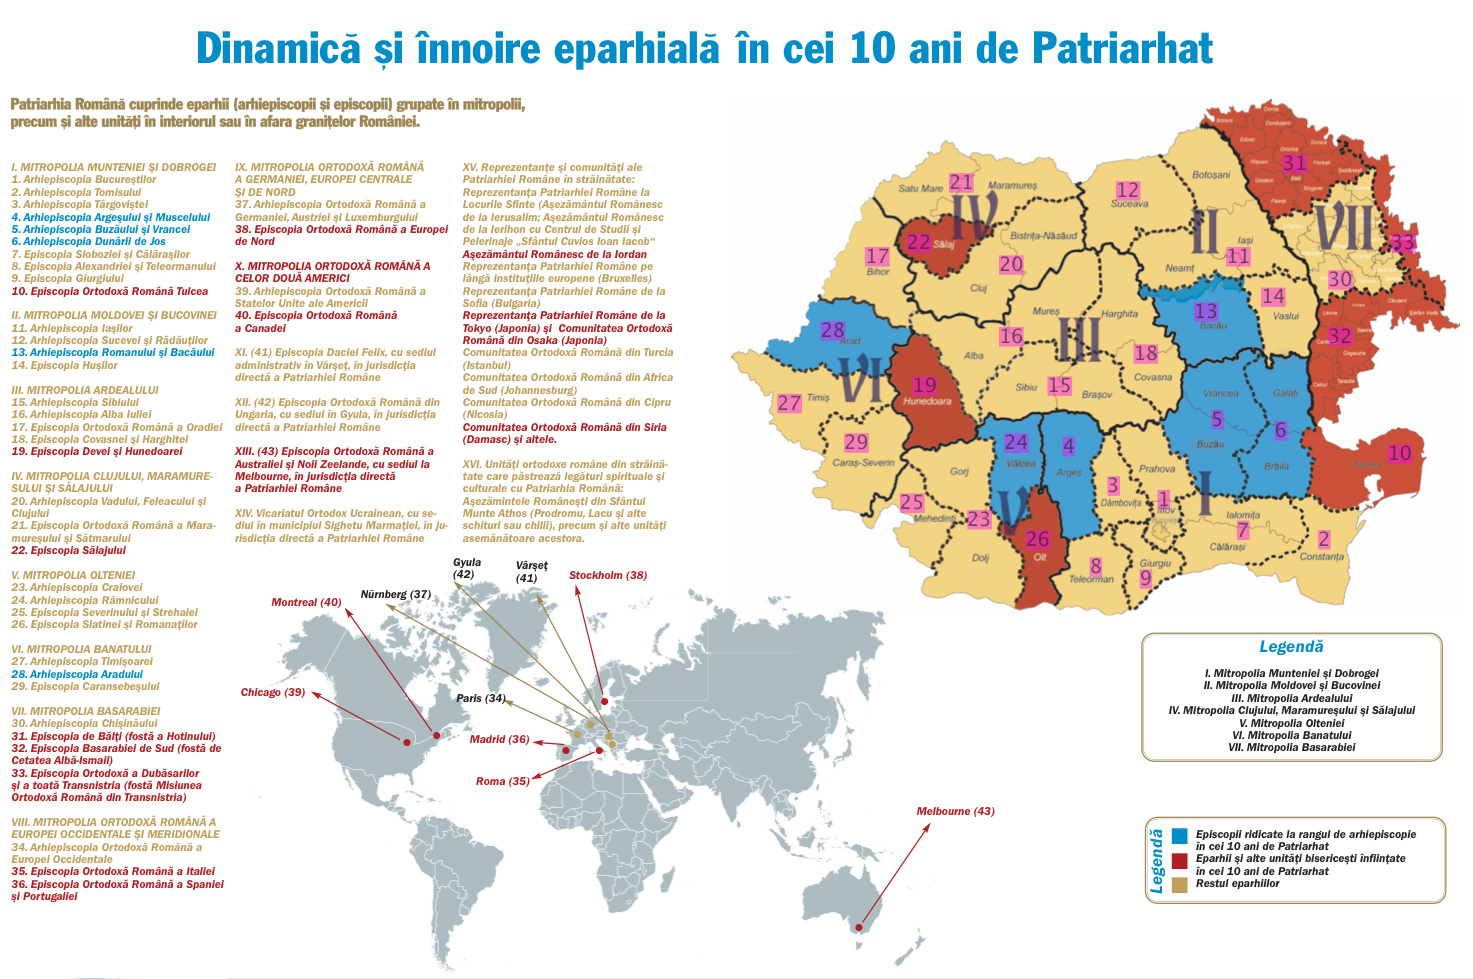 Dinamică şi înnoire eparhială în cei 10 ani de Patriarhat / The dynamic and renewal of eparchies in 10 years of Patriarchate